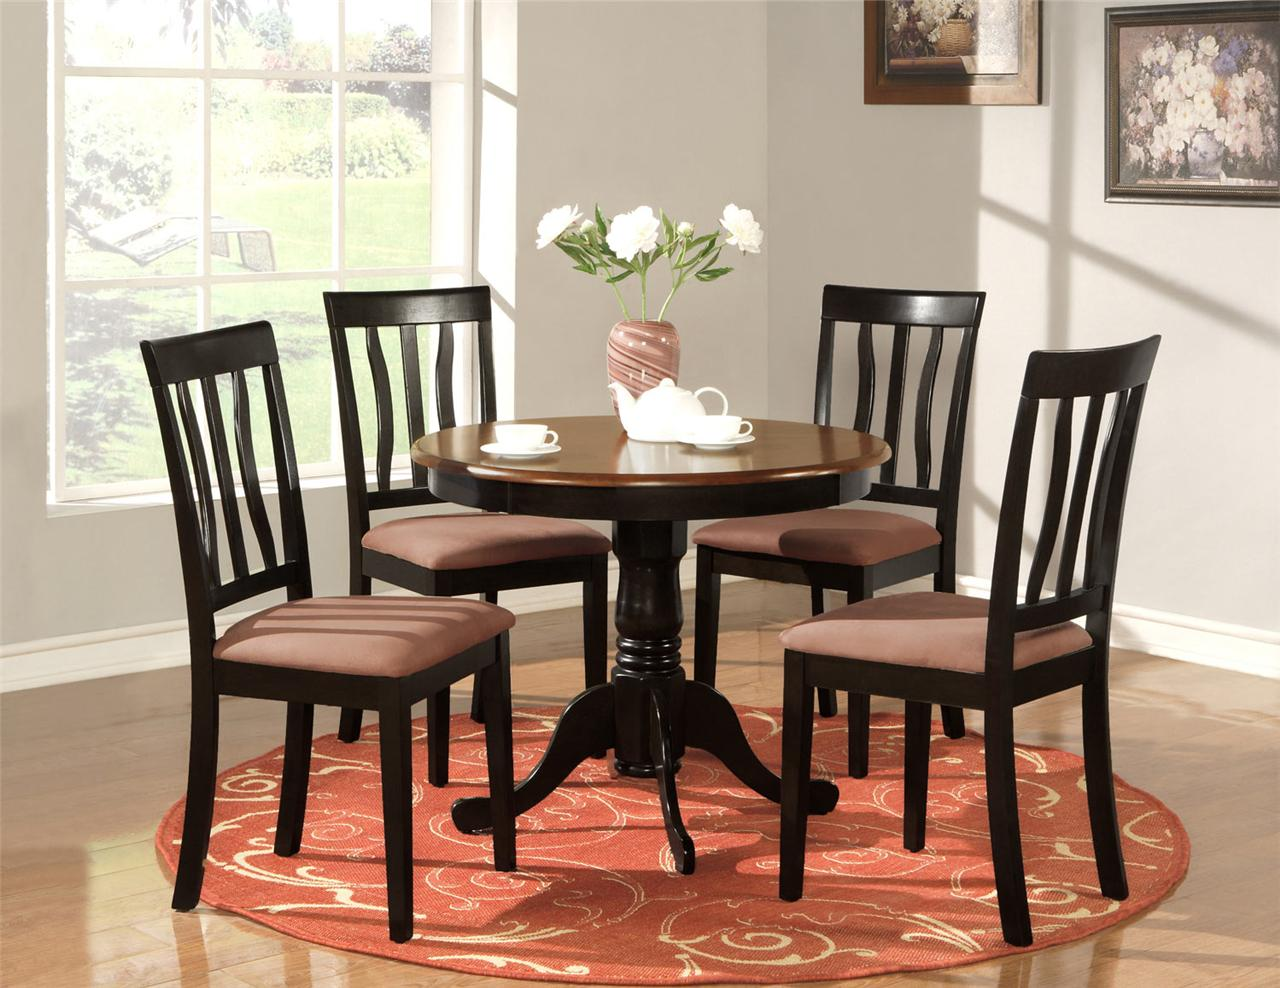 5 pc round table dinette kitchen table 4 chairs oak ebay On kitchen table chairs